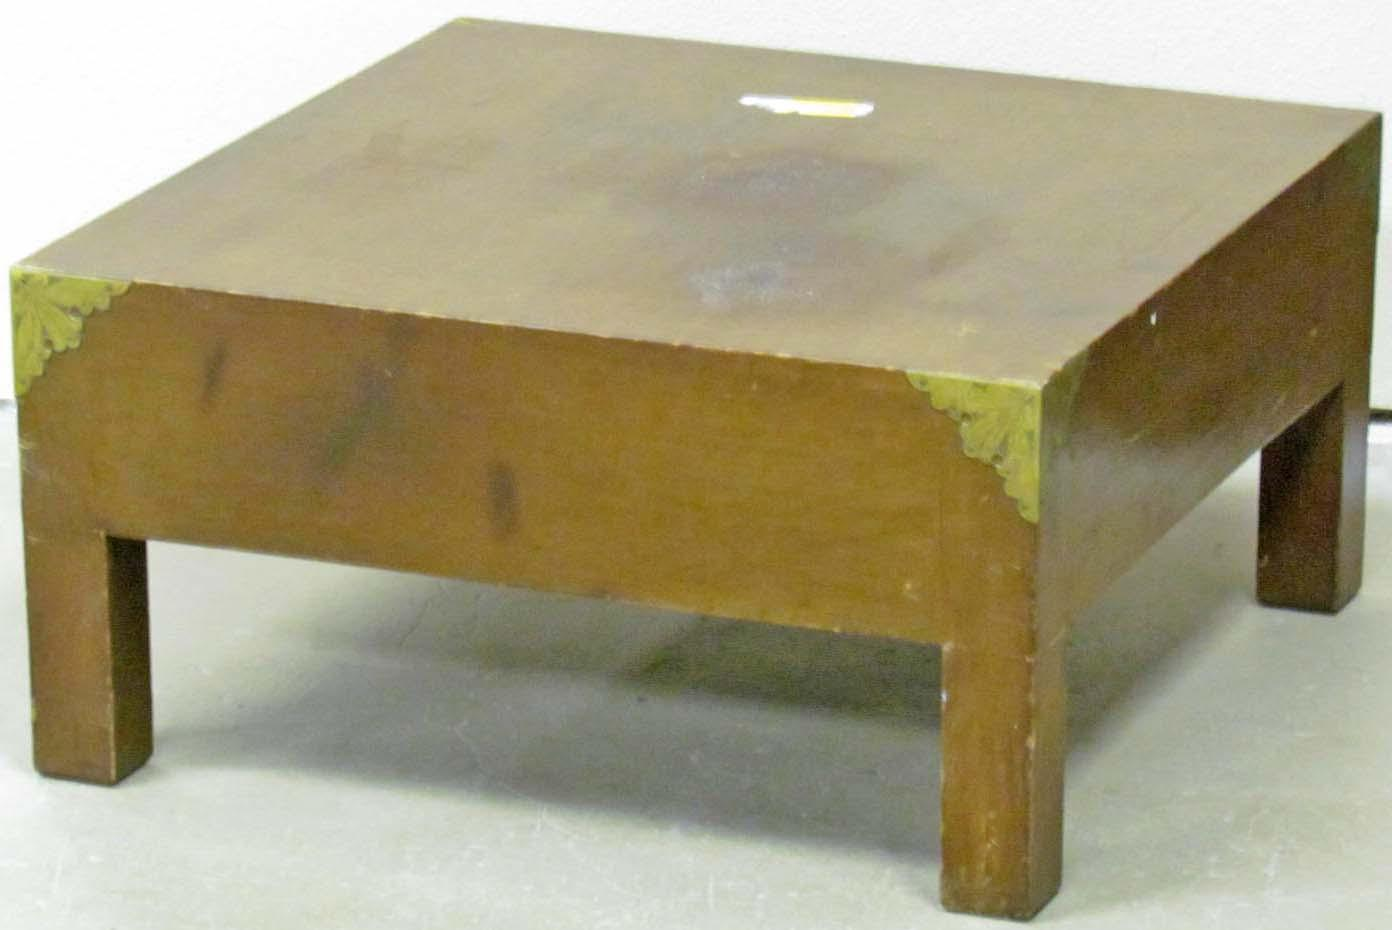 Ordinaire ... Image 2 : SMALL WOODEN SIDE TABLE W/ METAL CORNERS